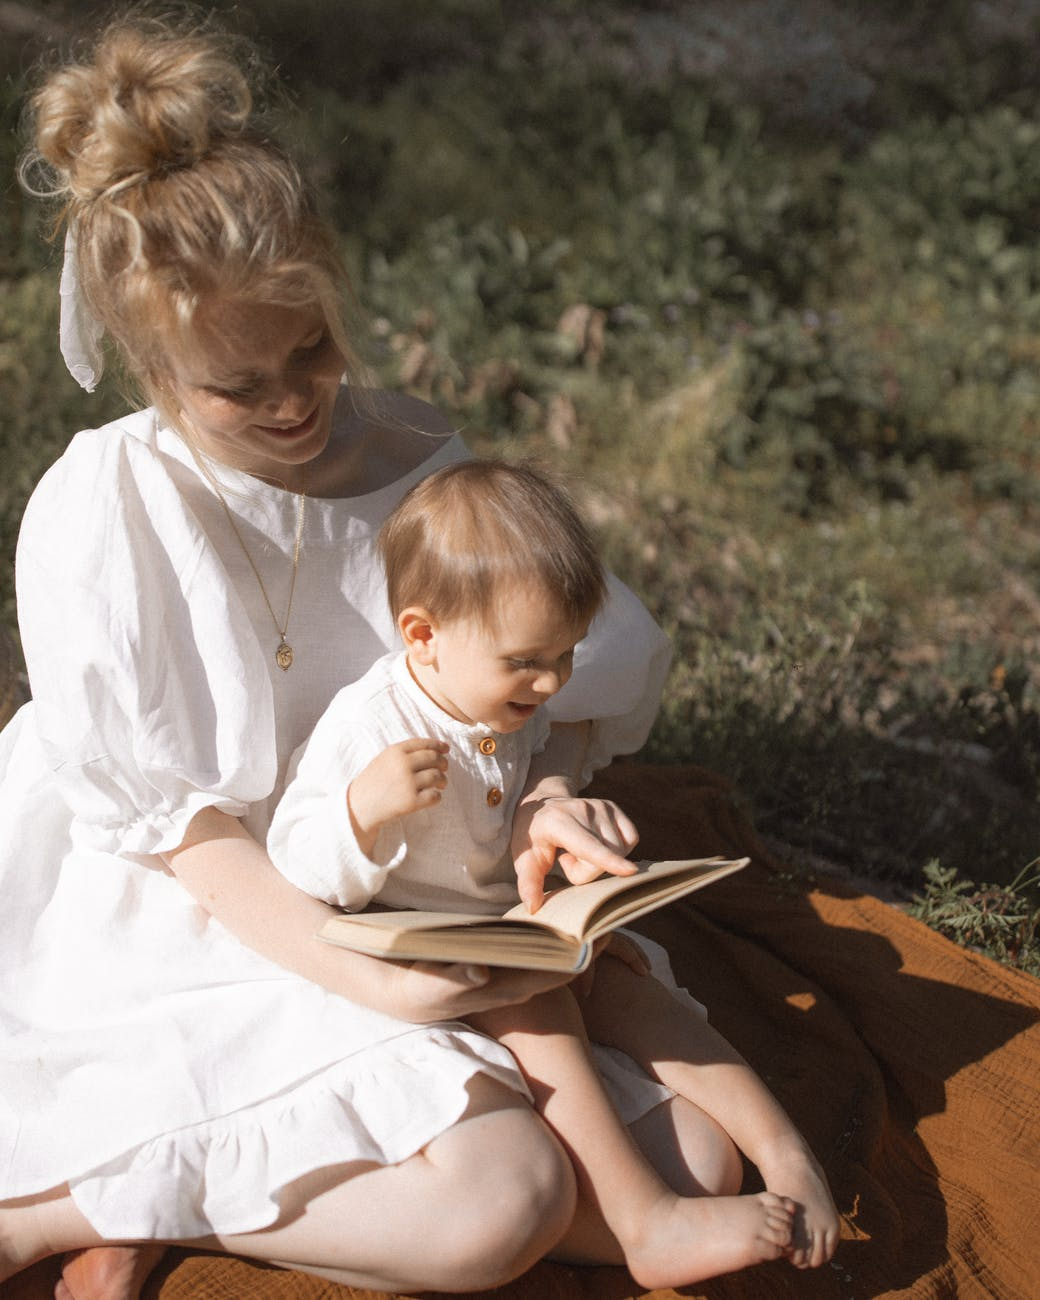 photo of woman and baby reading a book